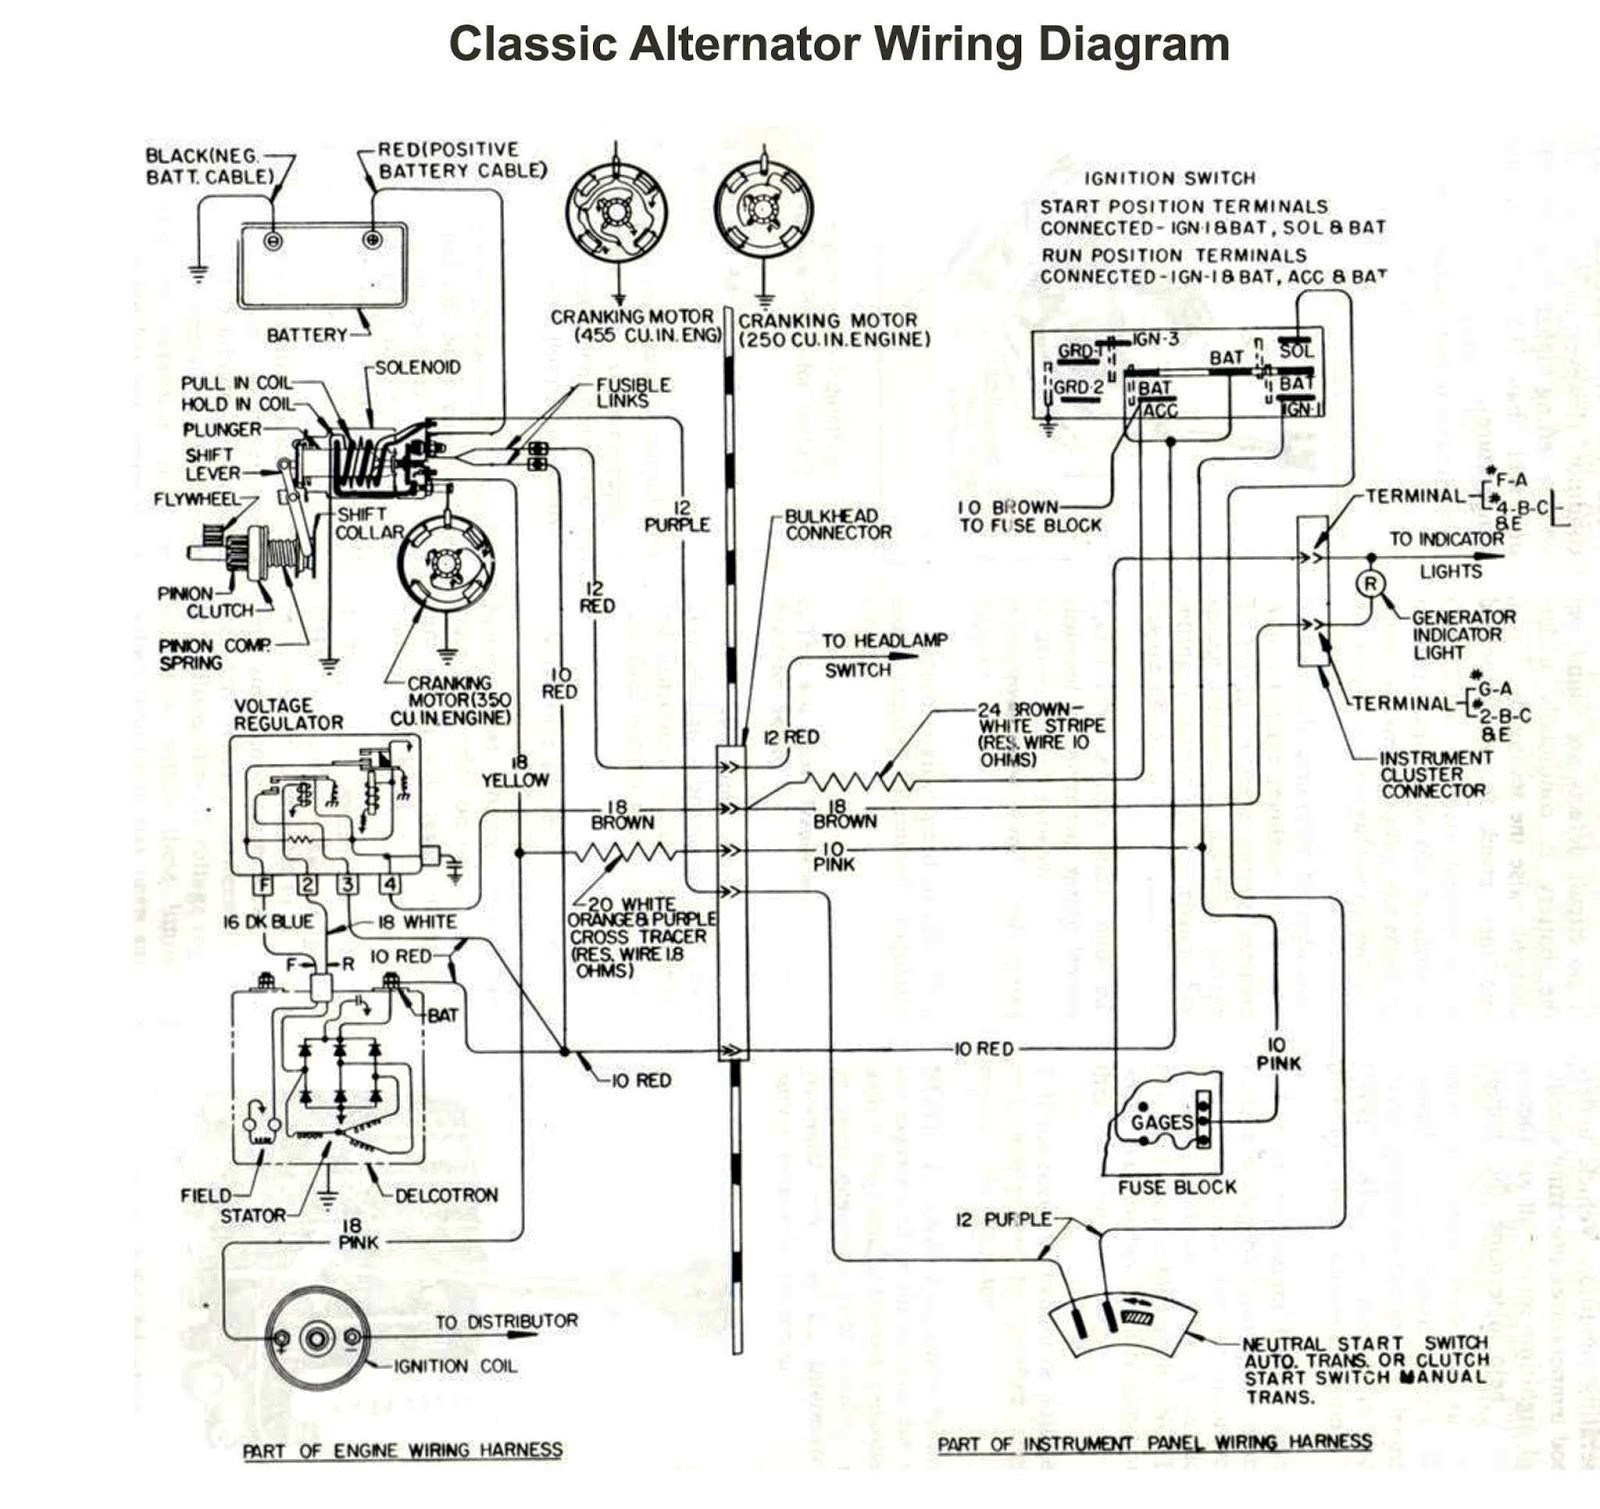 Automotive Voltage Regulator Wiring Diagram Download | Wiring ... on 4 wire alternator, 4 wire furnace diagram, 4 wire cable, 4 wire circuit, 4 wire generator, 4-way circuit diagram, 4 wire relay, 4 wire parts, 4 wire coil, 4 wire transformer, 4 wire fan diagram, 4 wire electrical wiring, 4 wire plug, 4 wire solenoid, 4 wire switch diagram, 4 wire headlight, 4 wire arduino diagram, 4 wire regulator, 4 wire compressor, 4 wire trailer diagram,